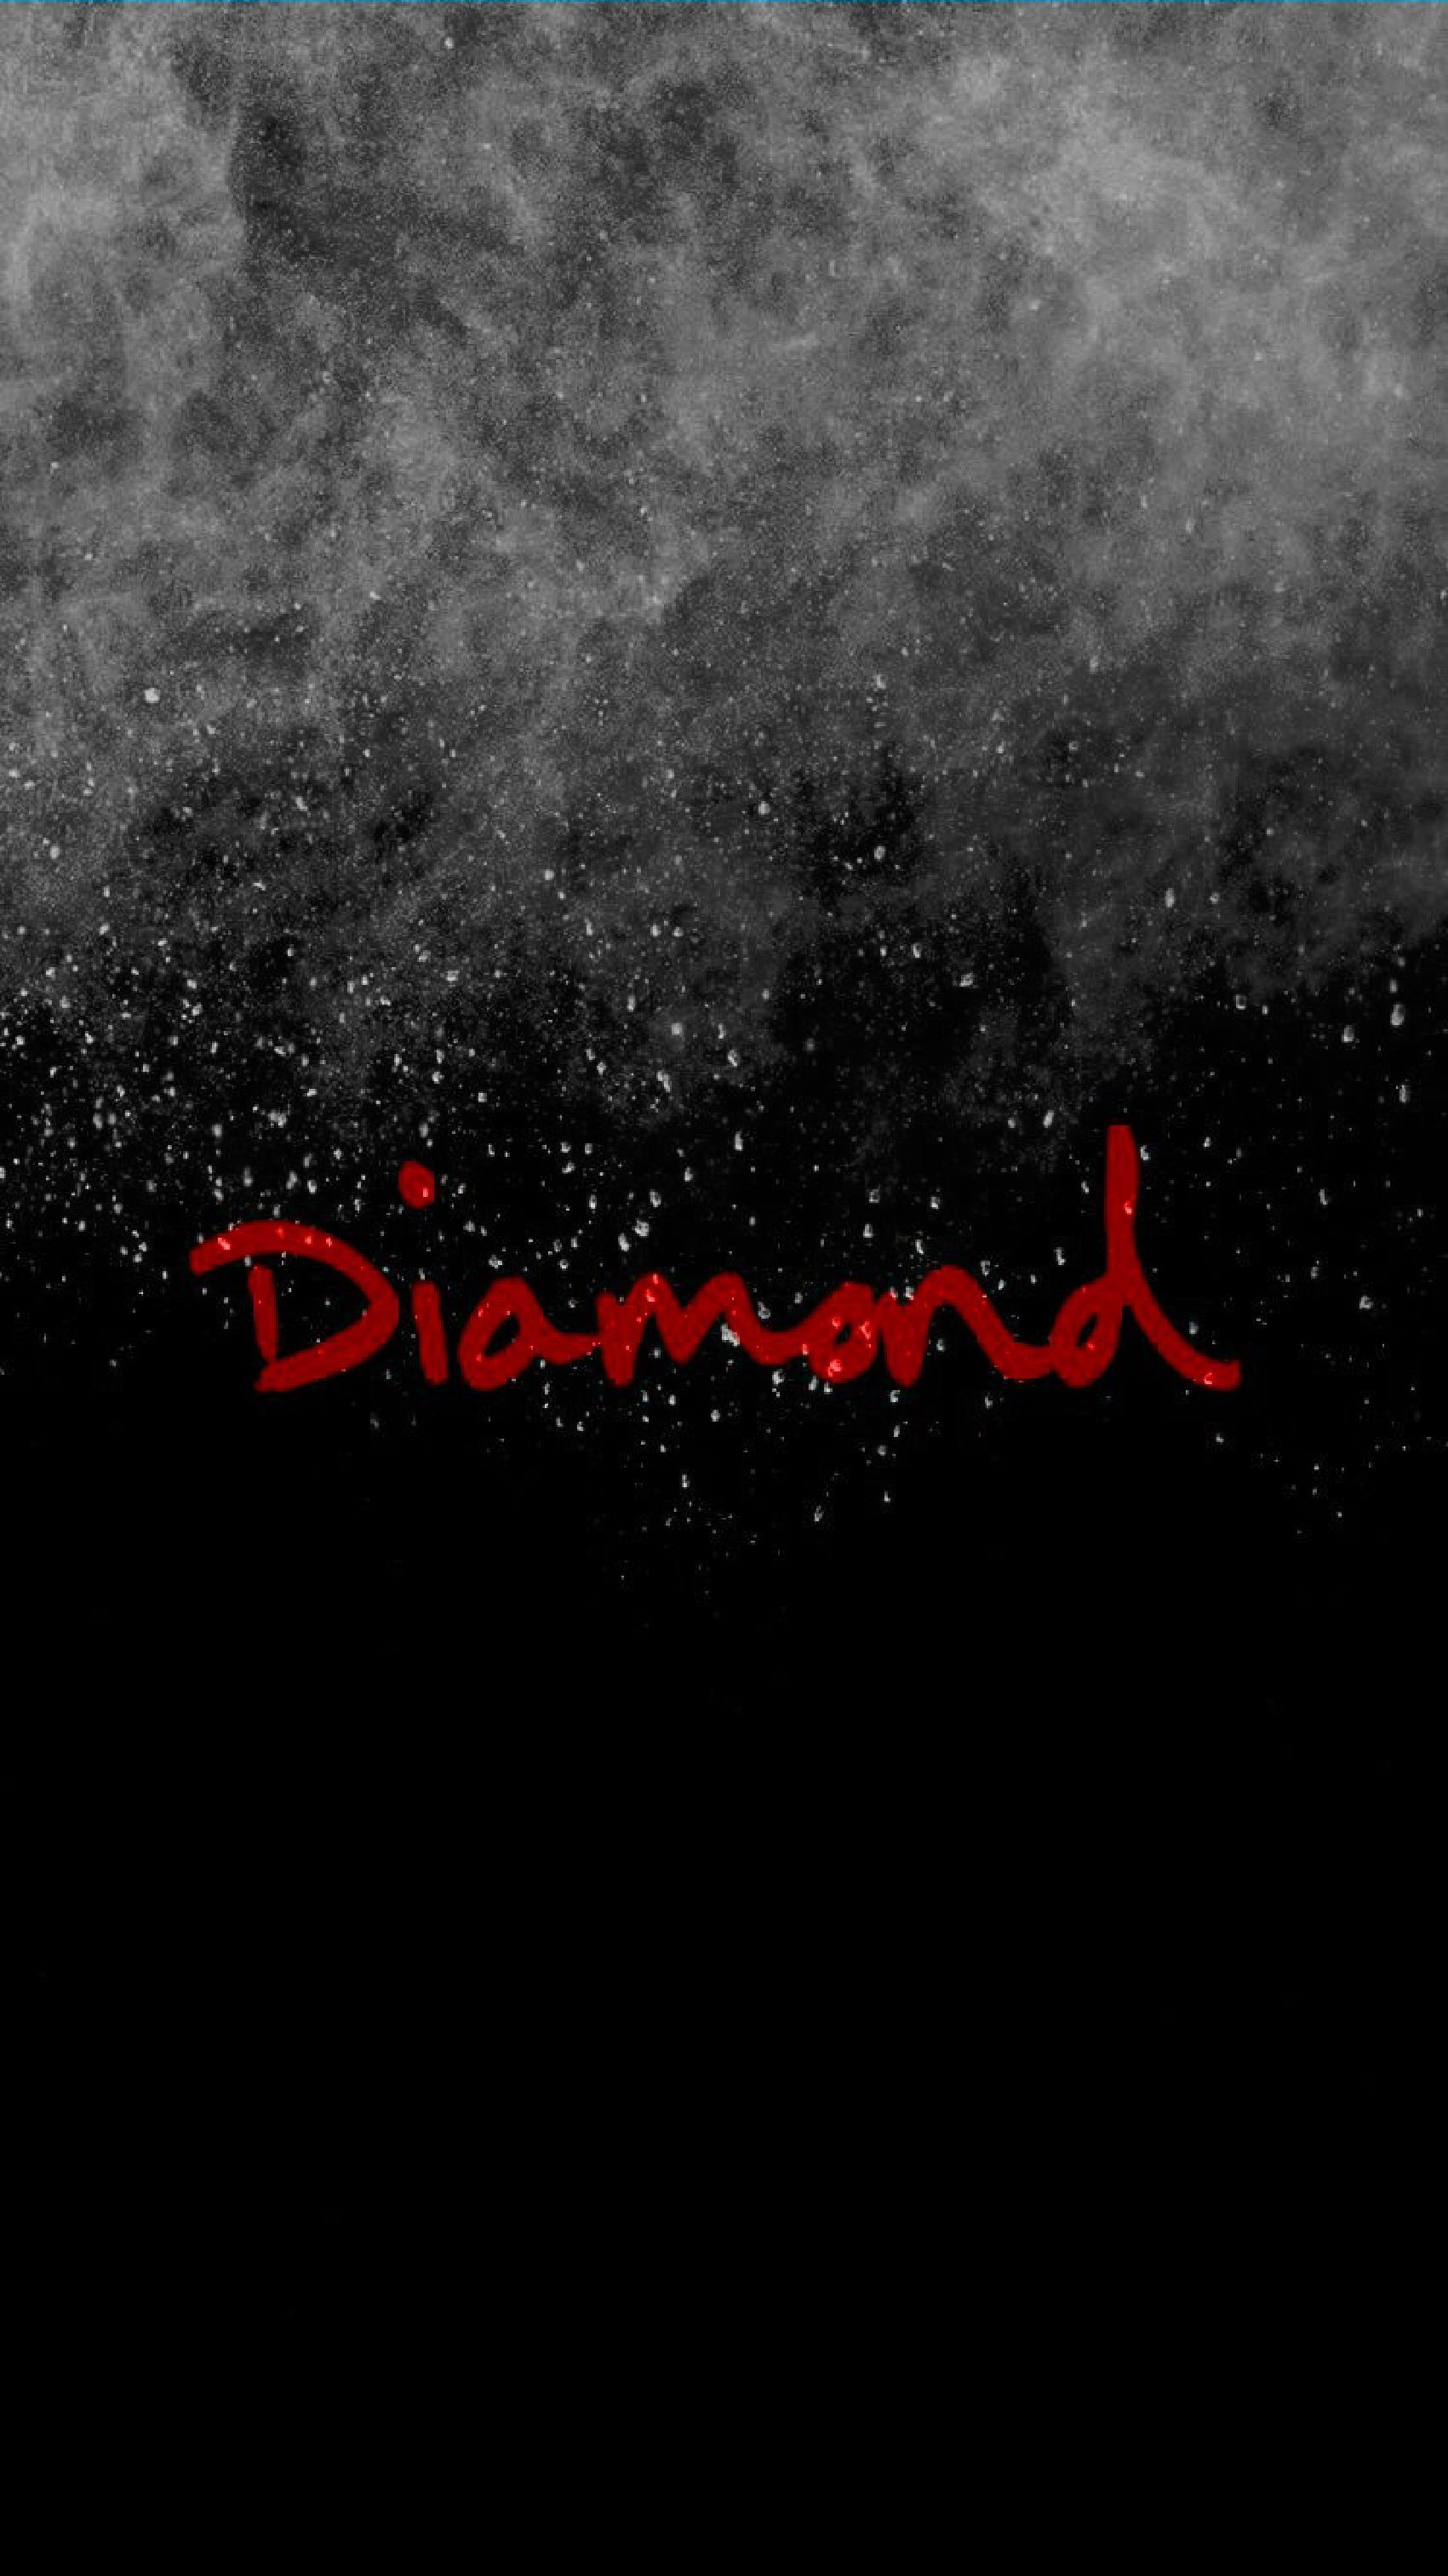 Red Diamond Supply Co Wallpapers Top Free Red Diamond